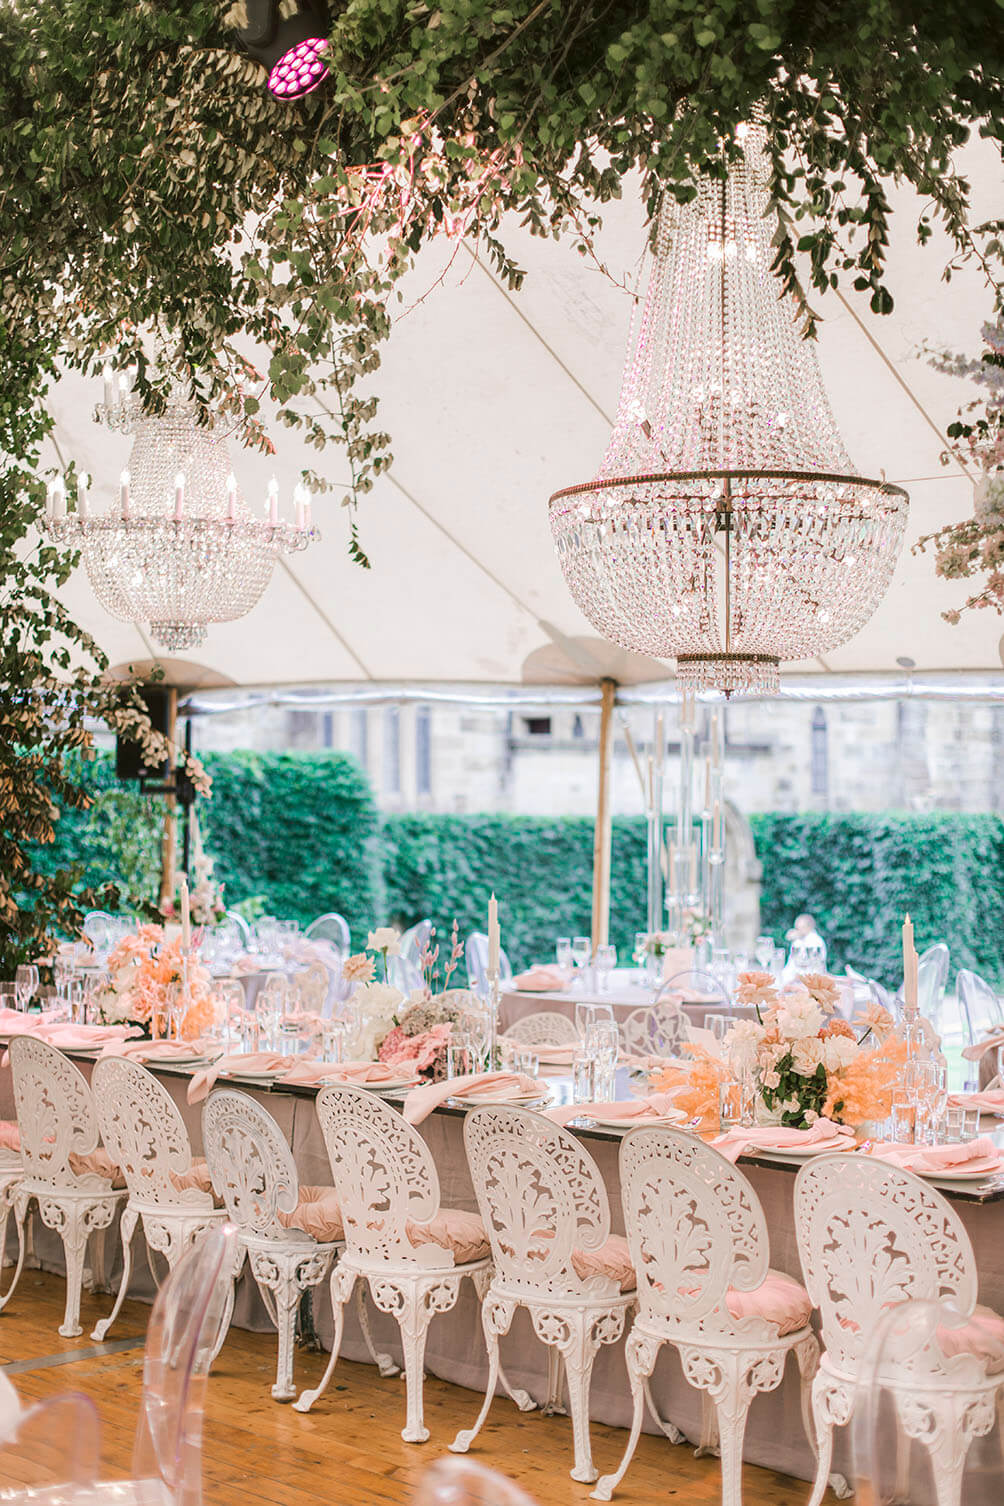 Lush manicured grounds to complement your event styling